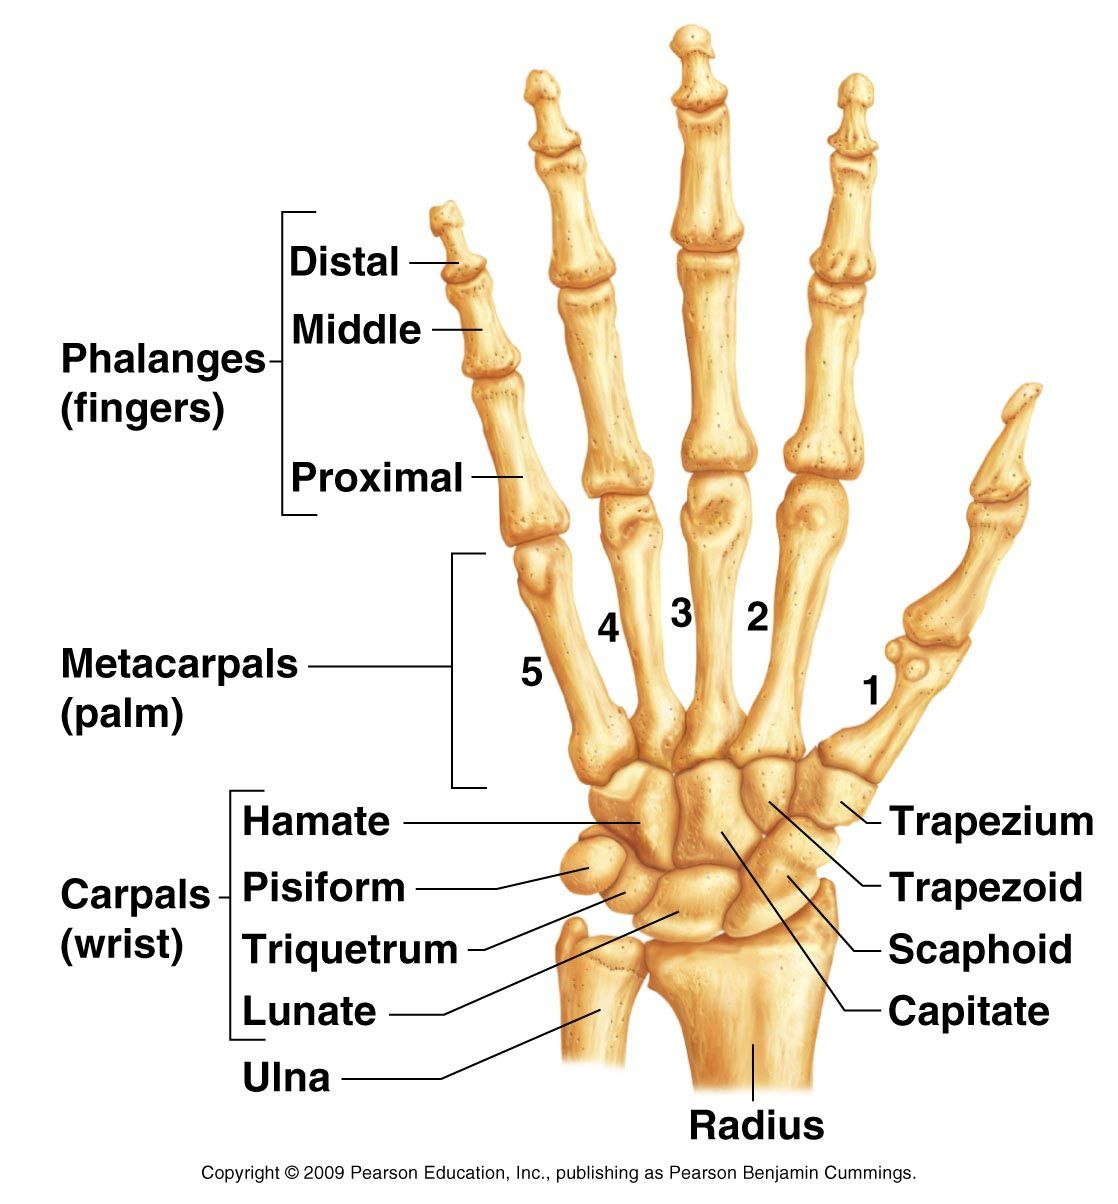 Hand and wrist bone structures | Anatomy & Physiology print outs ...